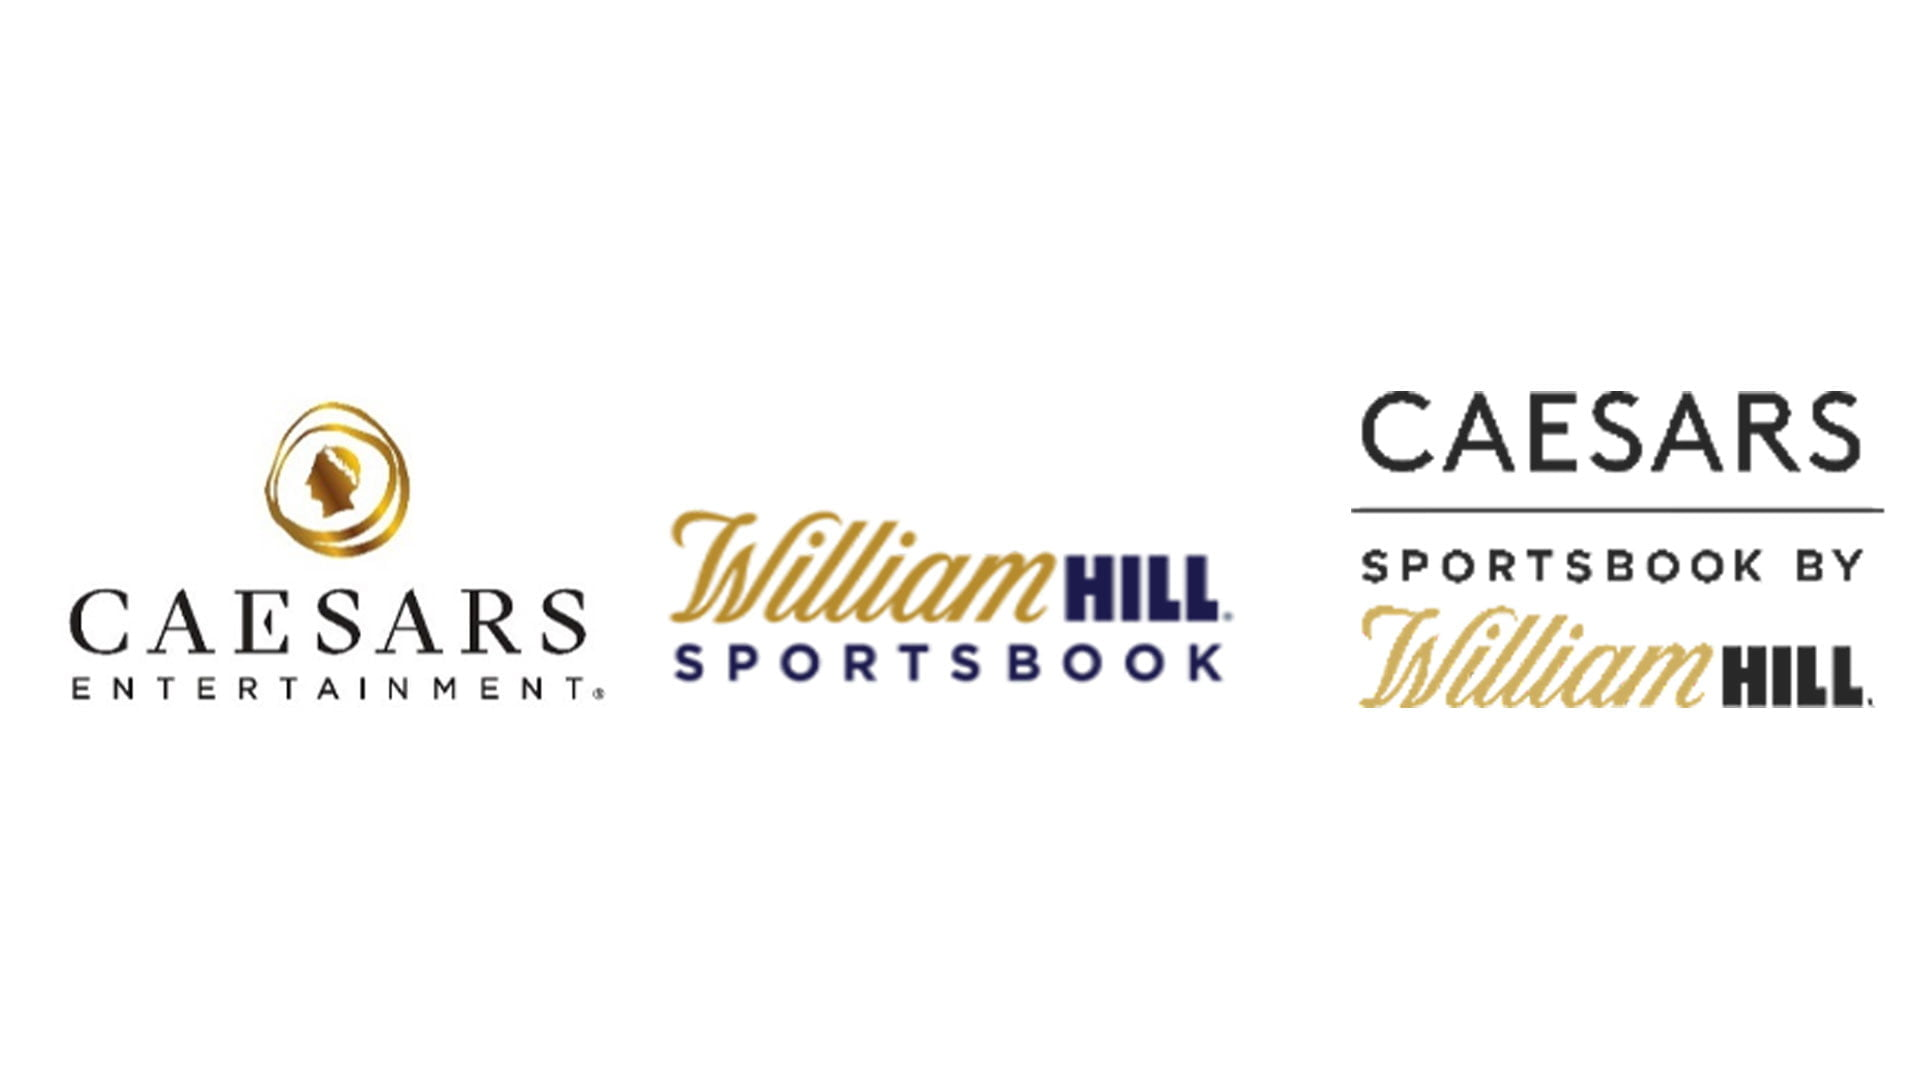 Caesars confirms M&A intentions with William Hill bid